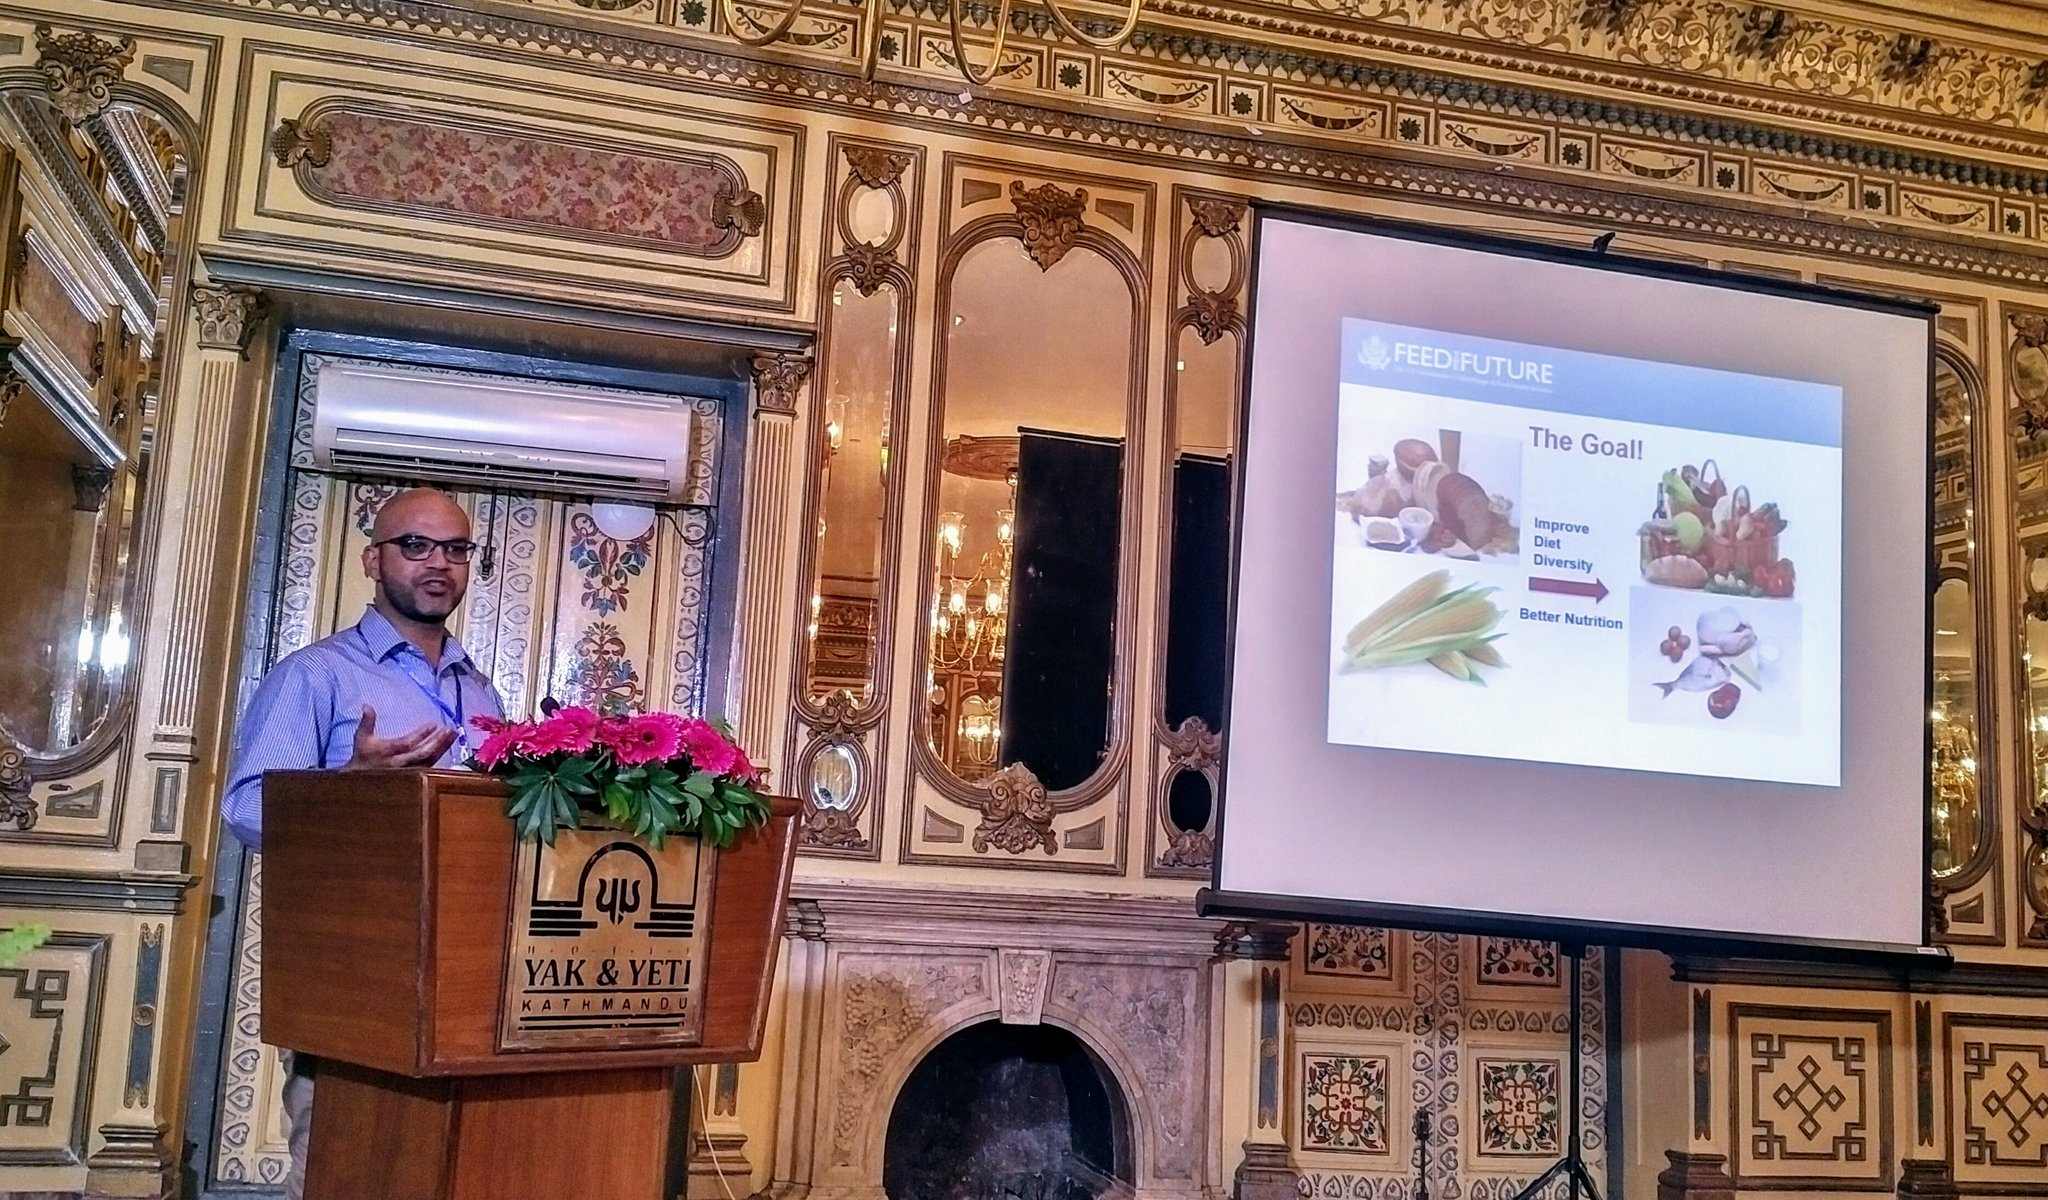 @magablha talk on #food safety issues and global #nutrition, in Nepal today. #AgNutSympo @FTFNutriLab @IMMANA_res https://t.co/6YTNJP2ygX